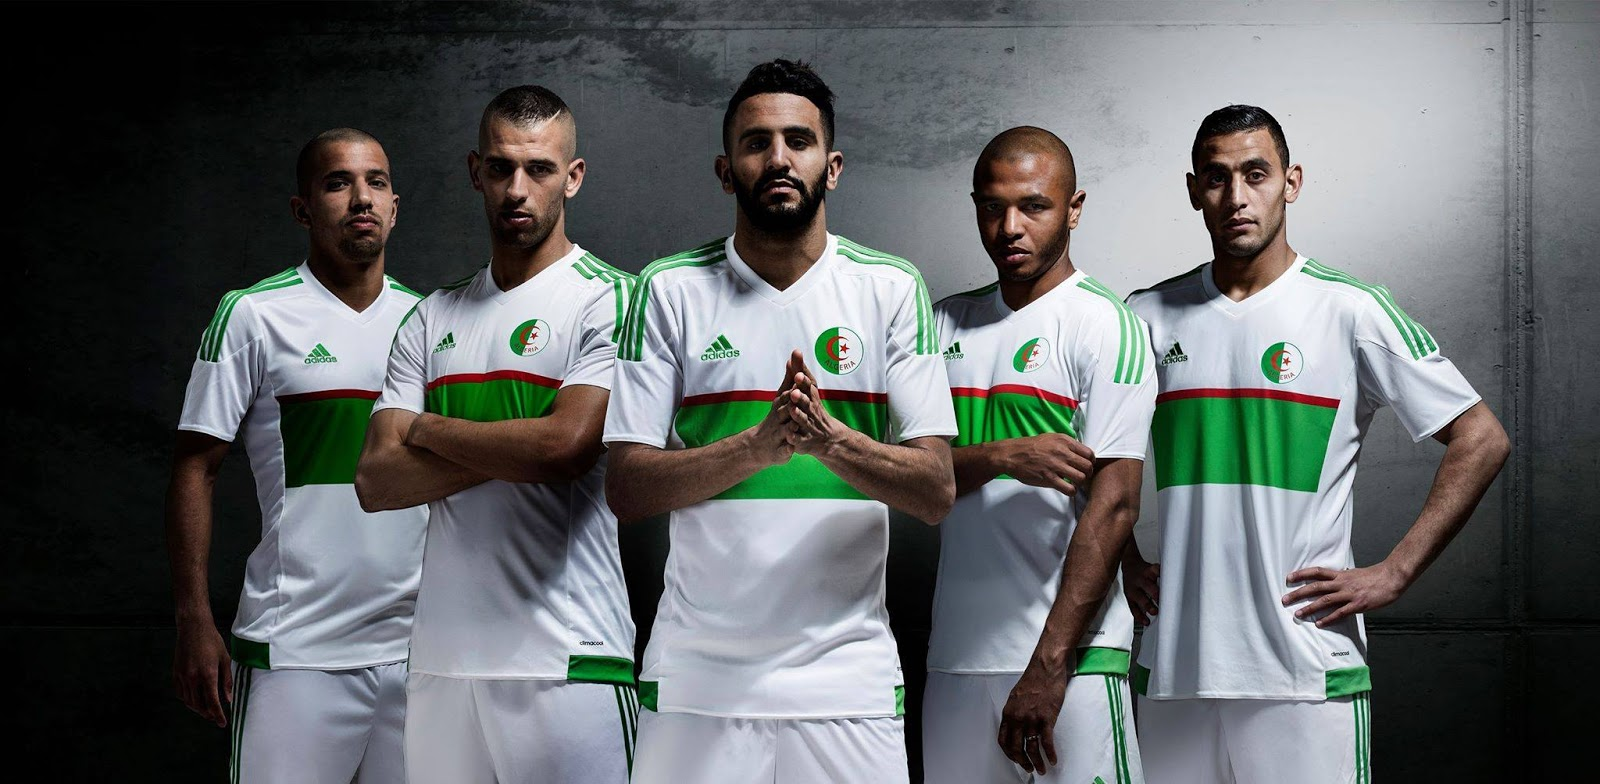 algeria national team jersey